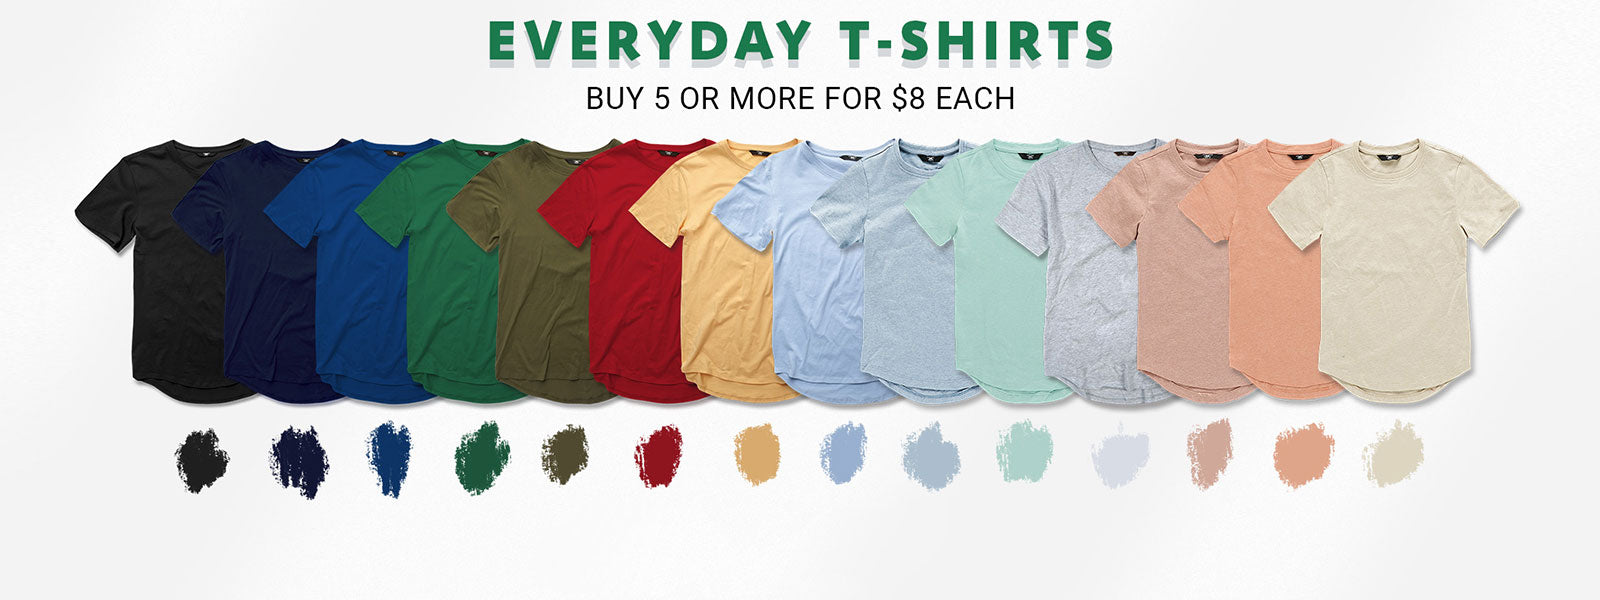 jordancraig-kids-everyday-t-shirt_category-banner